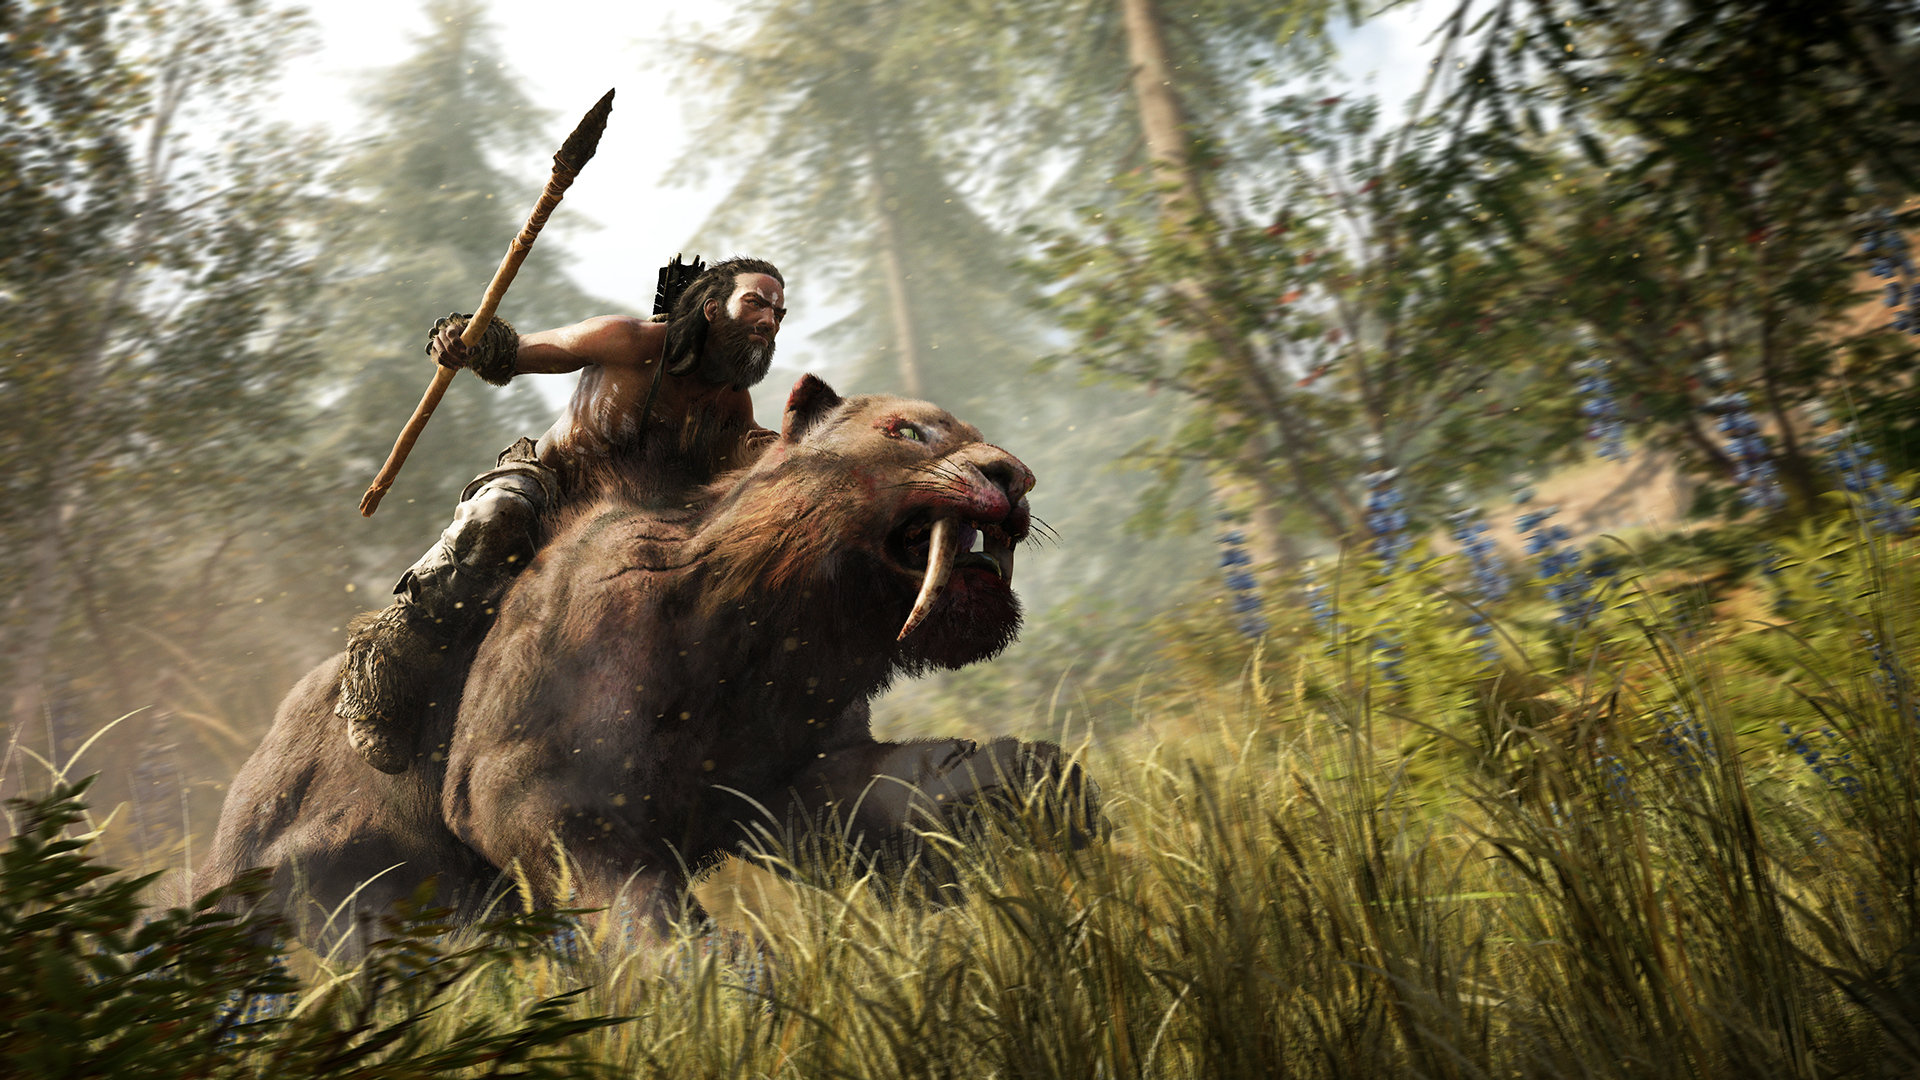 far-cry-primal-screen-10-ps4-us-15dec15?